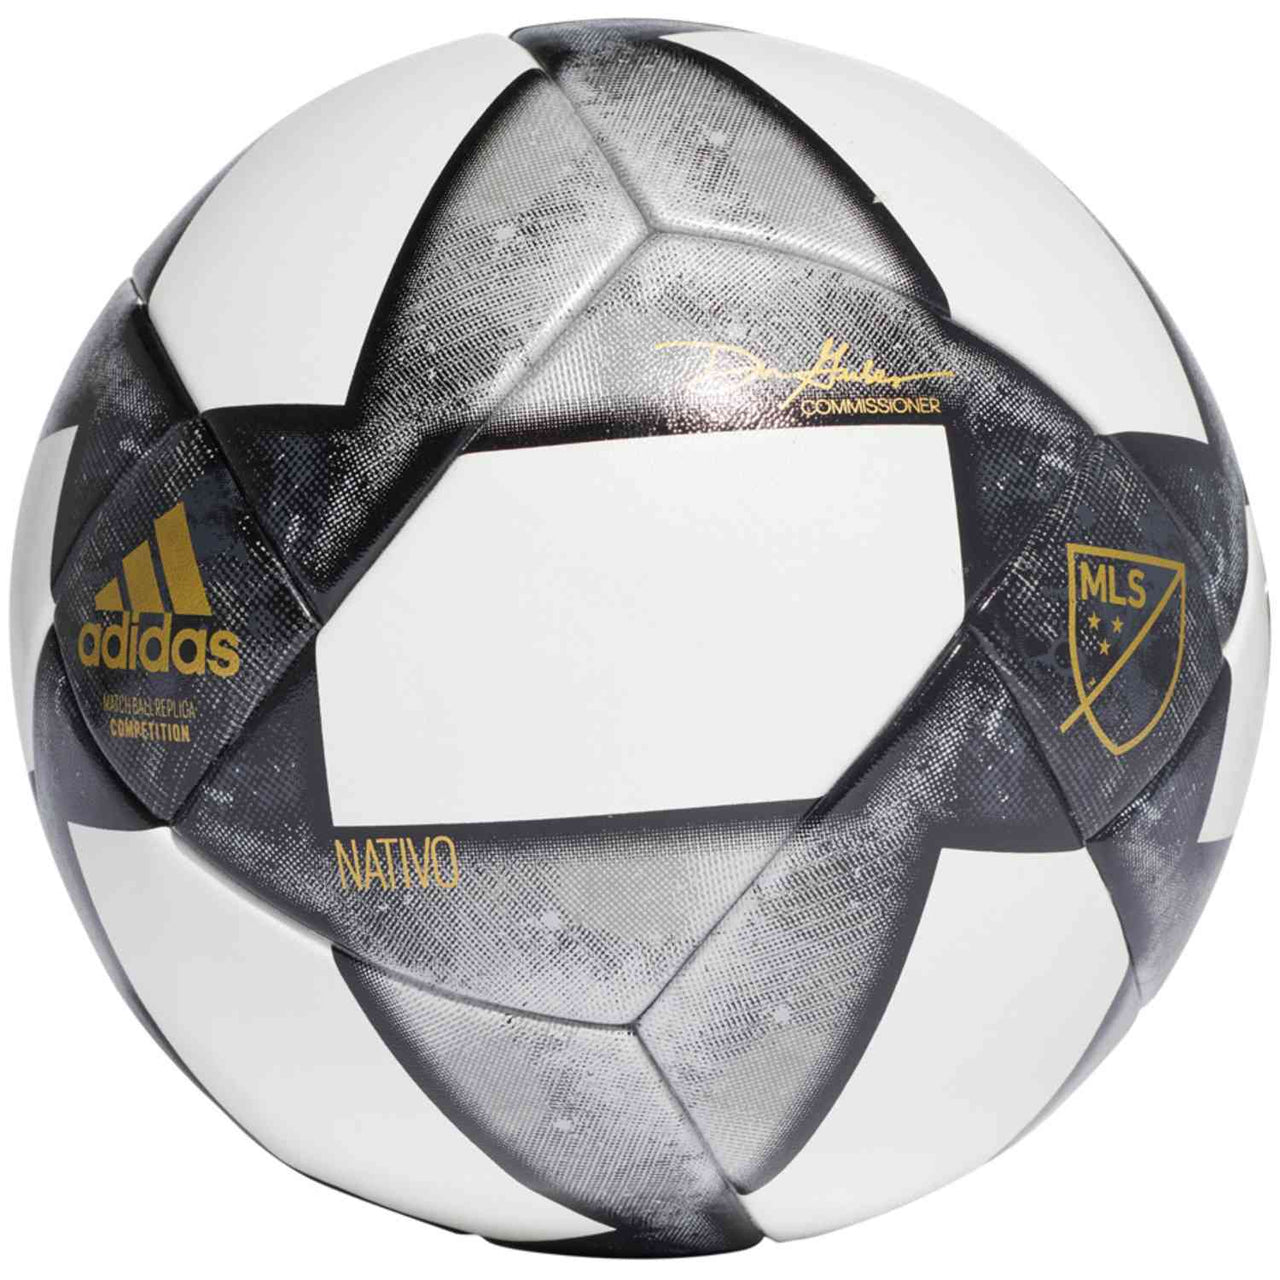 Adidas MLS Nativo Competition Ball